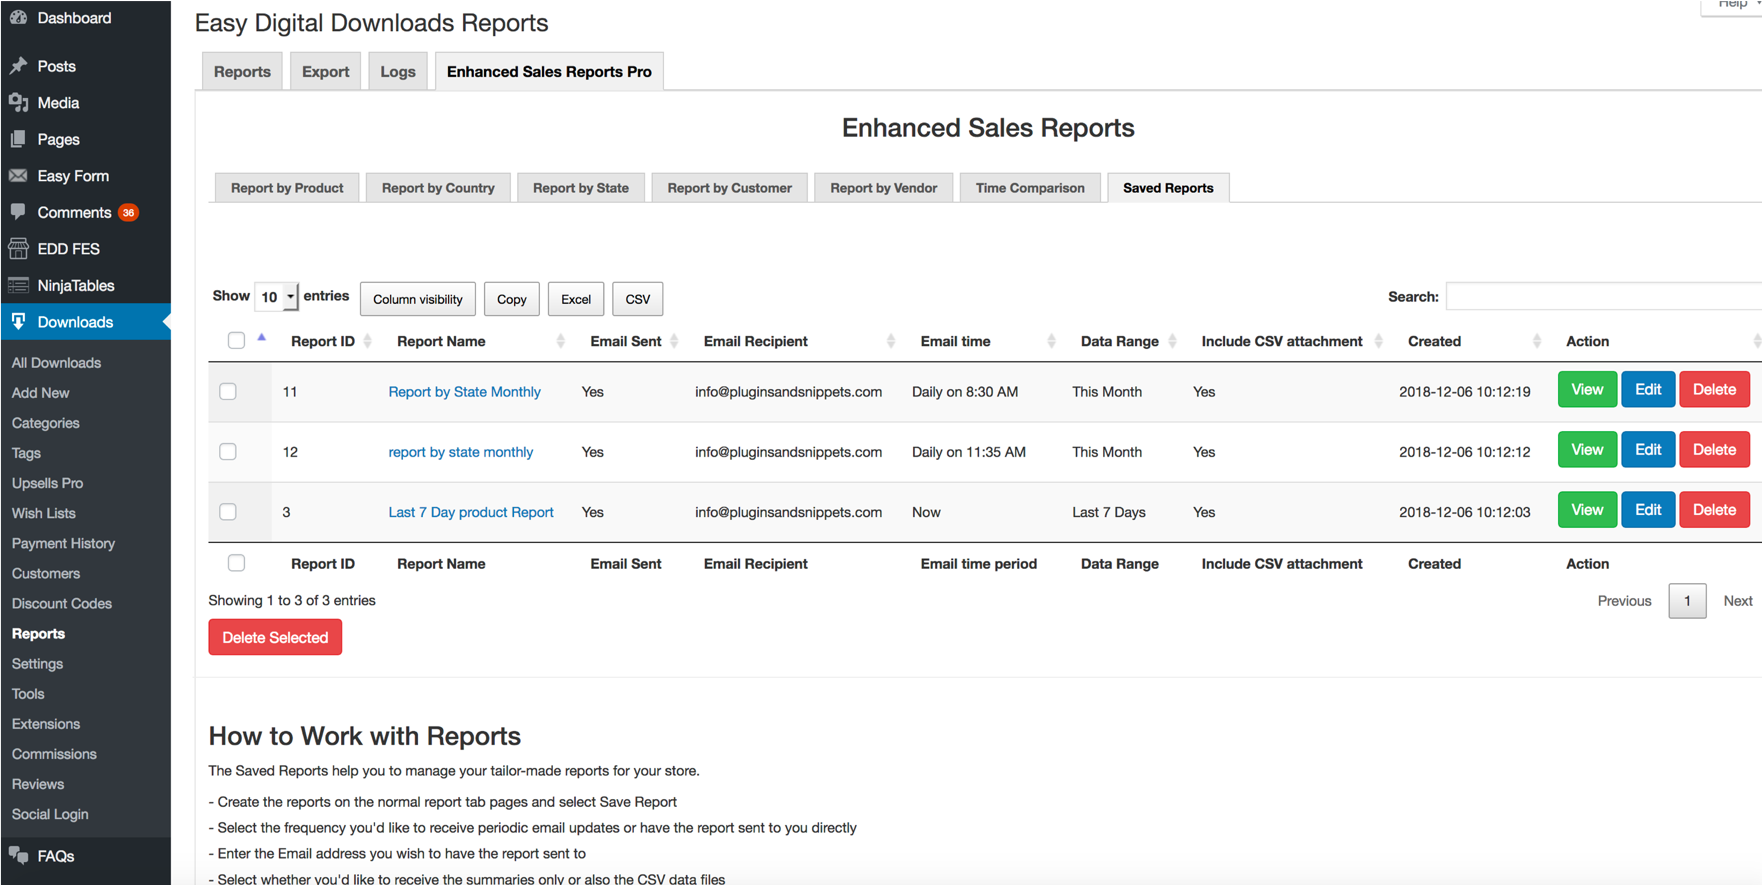 EDD Enhanced Sales Reports Pro Plugin List of Saved Reports